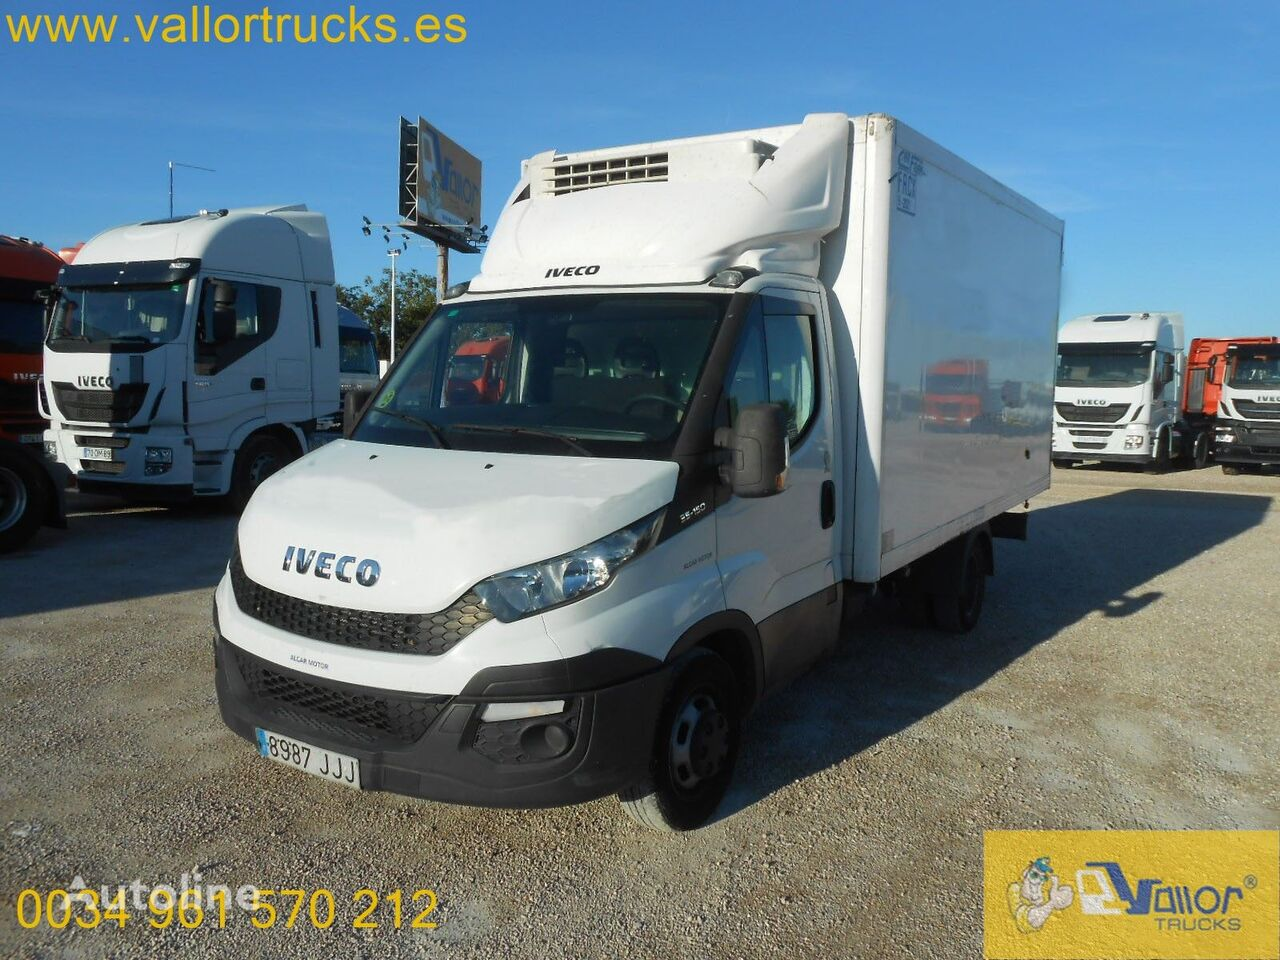 IVECO Daily 35 refrigerated truck < 3.5t